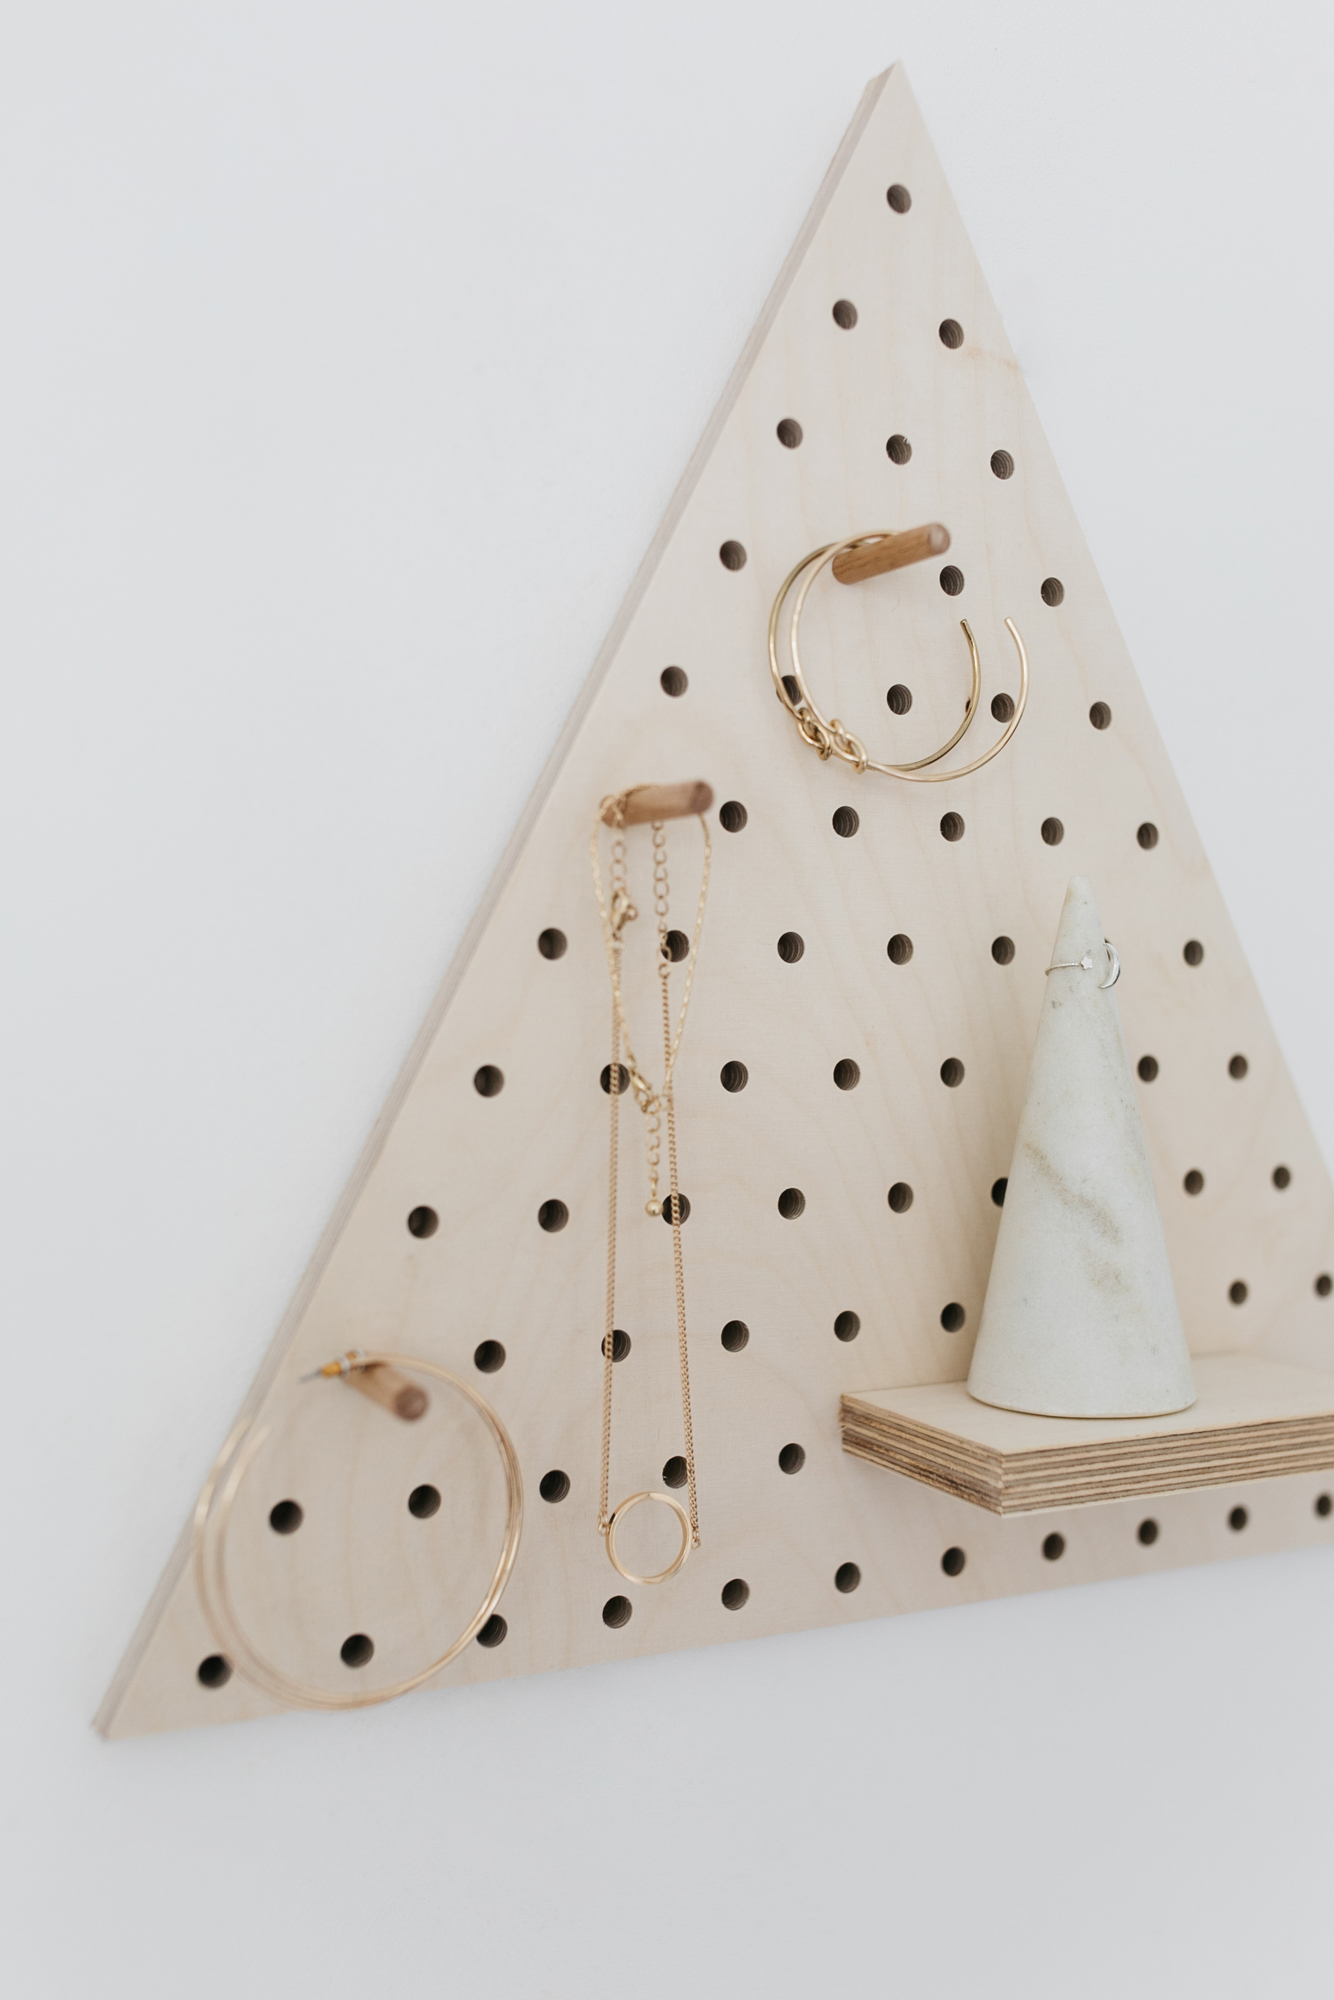 little-anana-pegboard-birchwood-panneau-perfore-bouleau-triangl